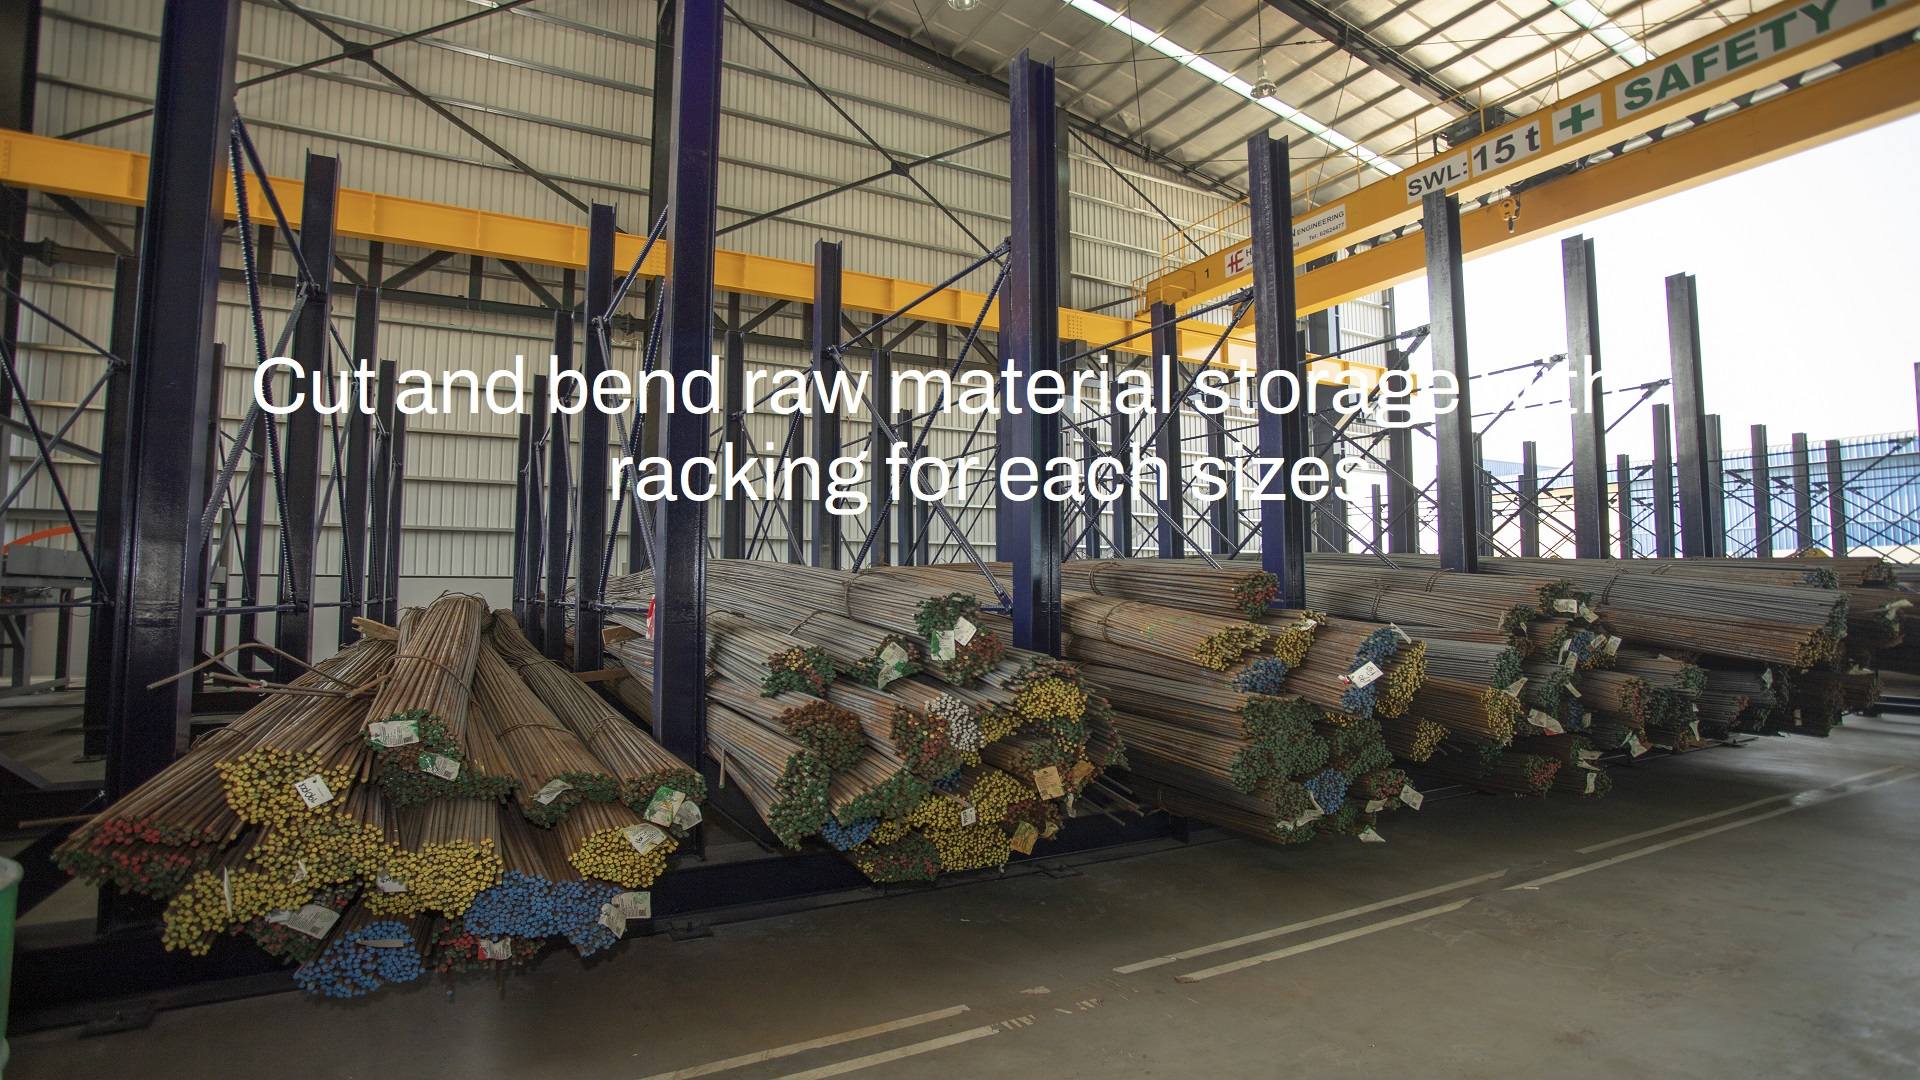 Cut and bend raw material storage with racking for each sizes